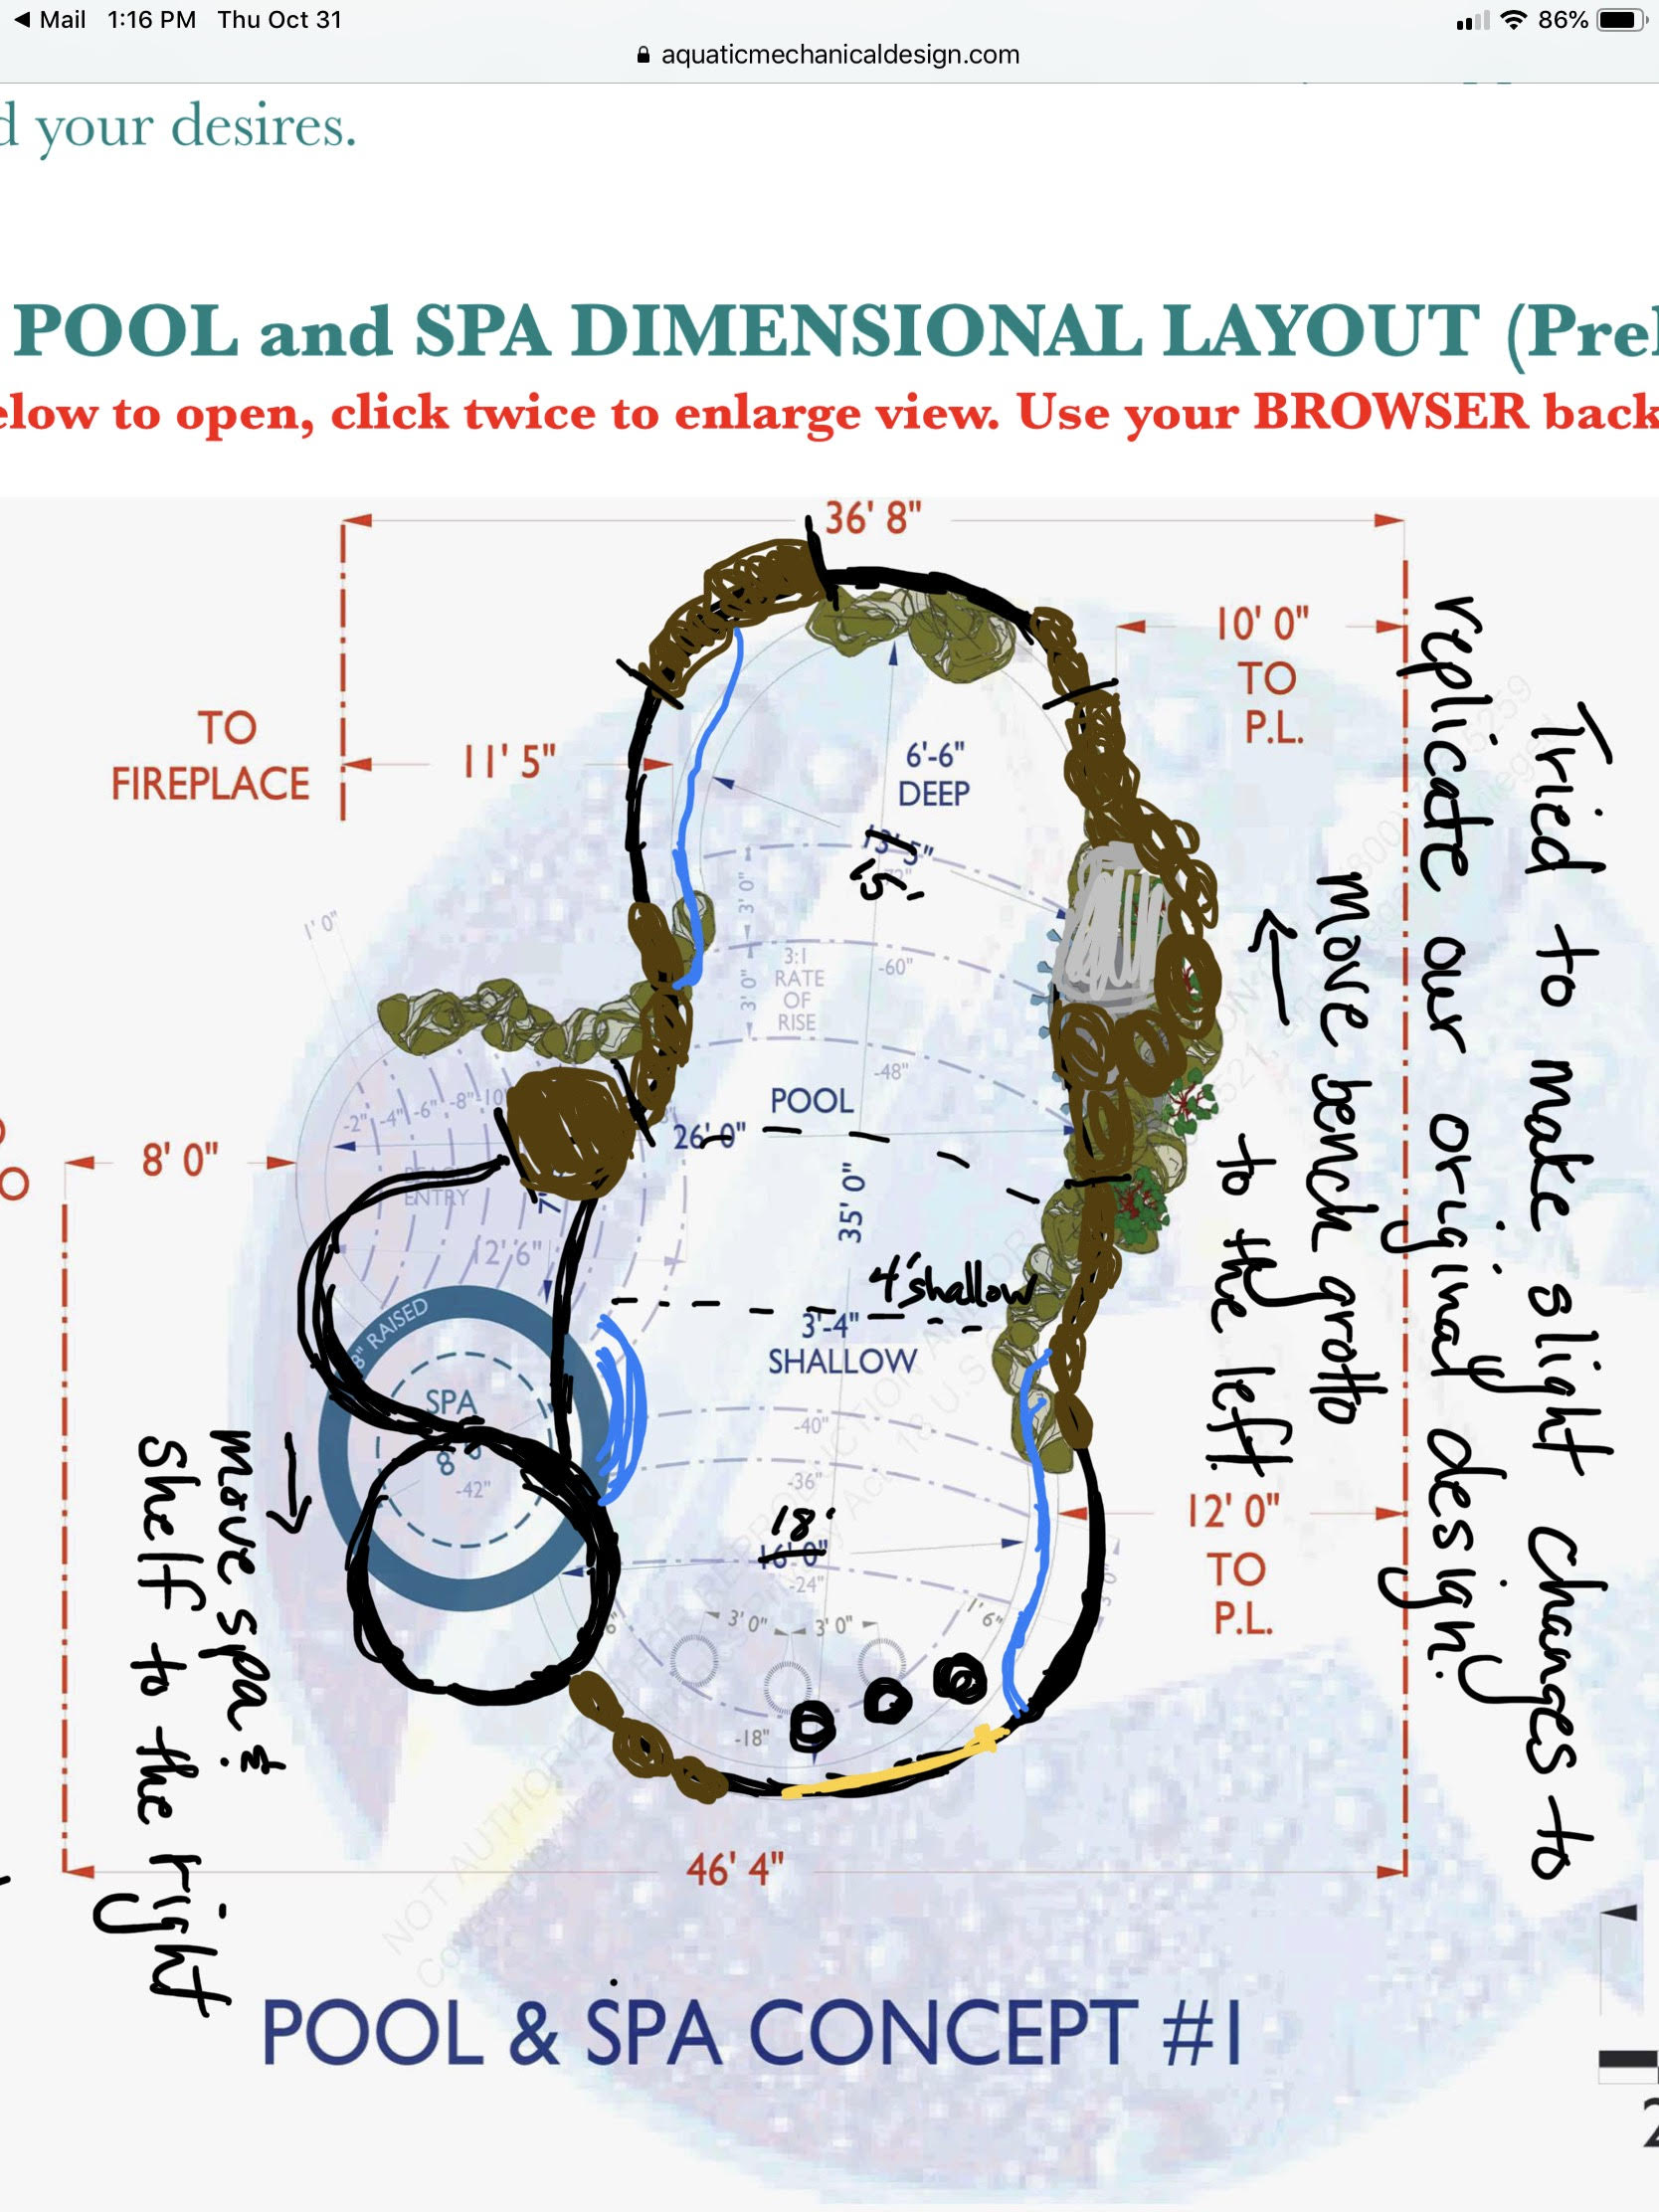 POOL AND SPA LAYOUT REV-4 (Preliminary)